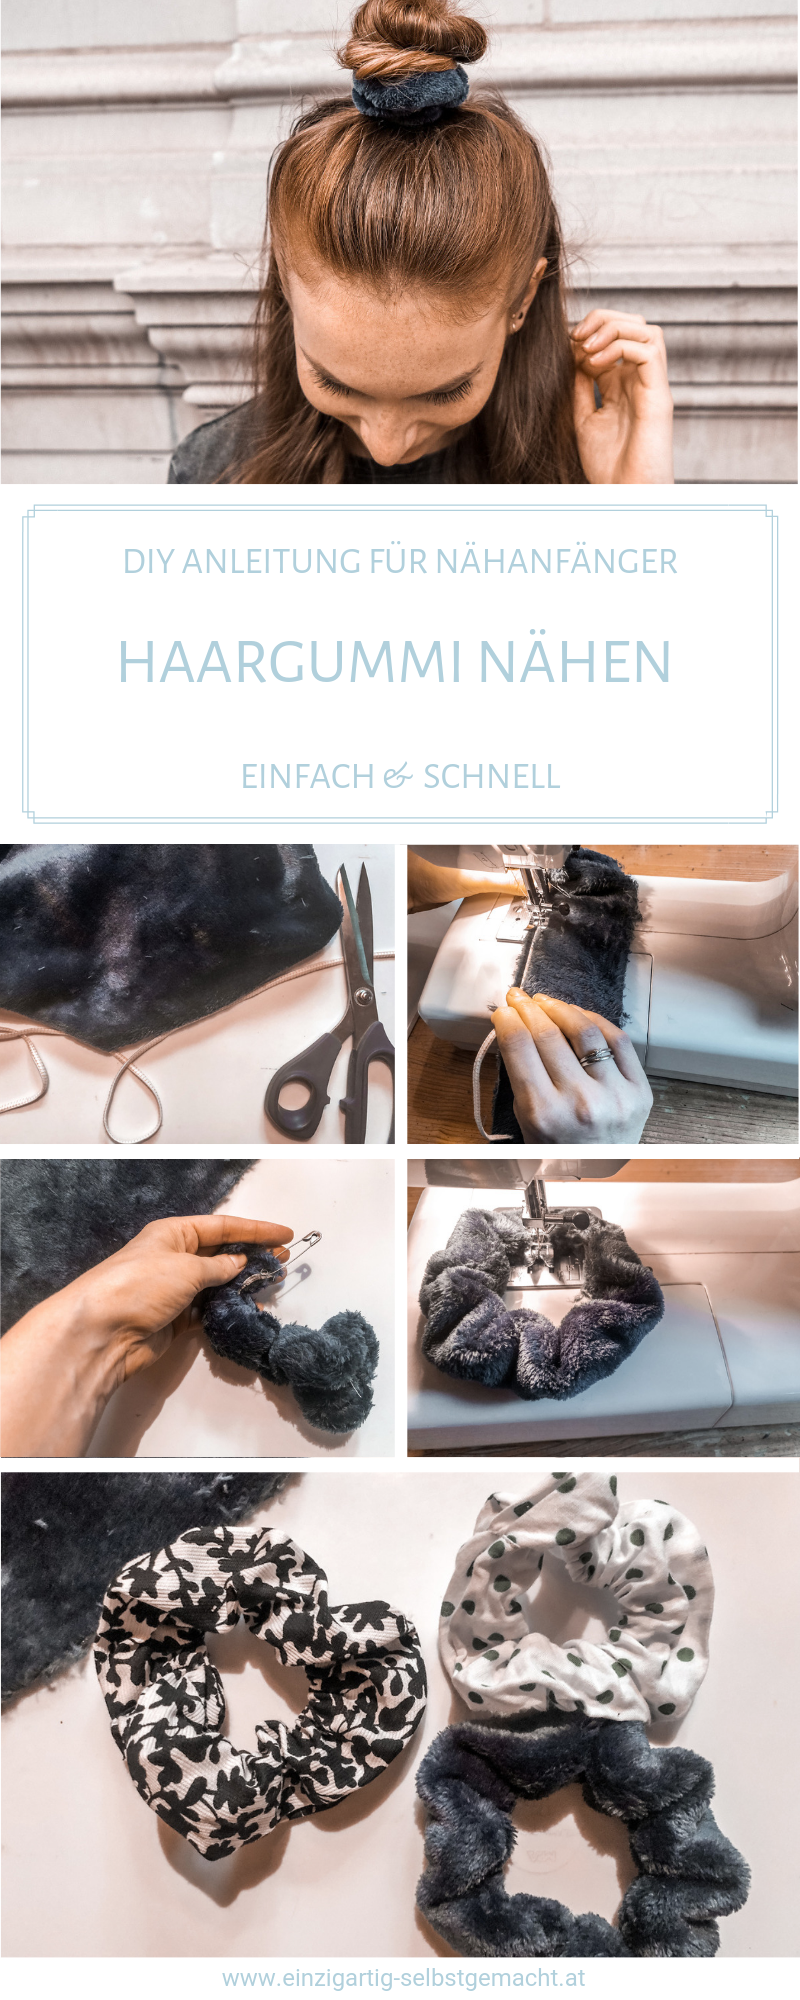 Sewing a hair tie  easy DIY with fabric remnants for beginners  DIY  sewing a hair tie Here you will find a very simple guide to make your own hair tie The DIY